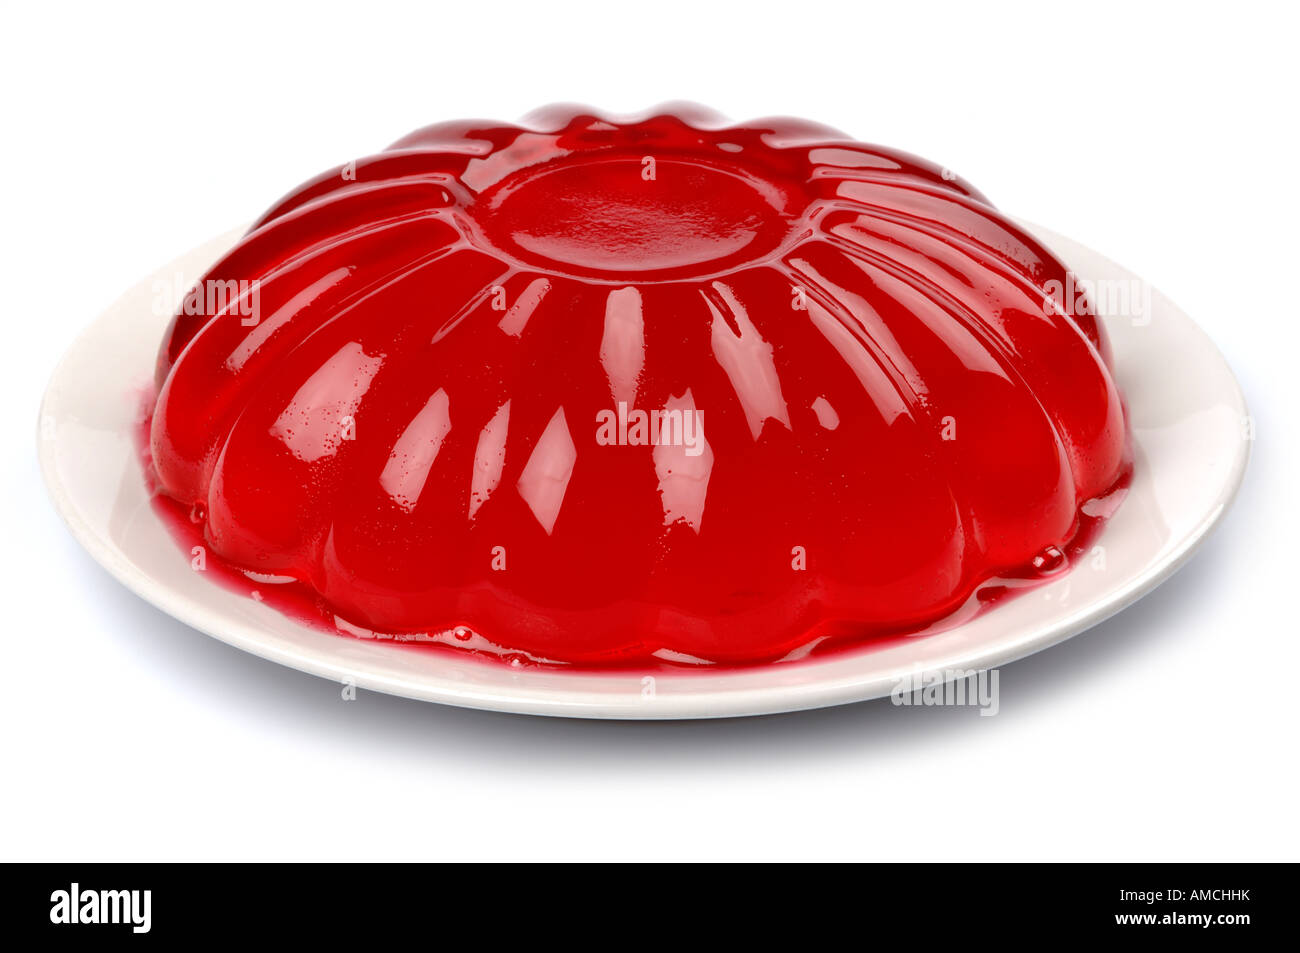 Red Jelly Cake